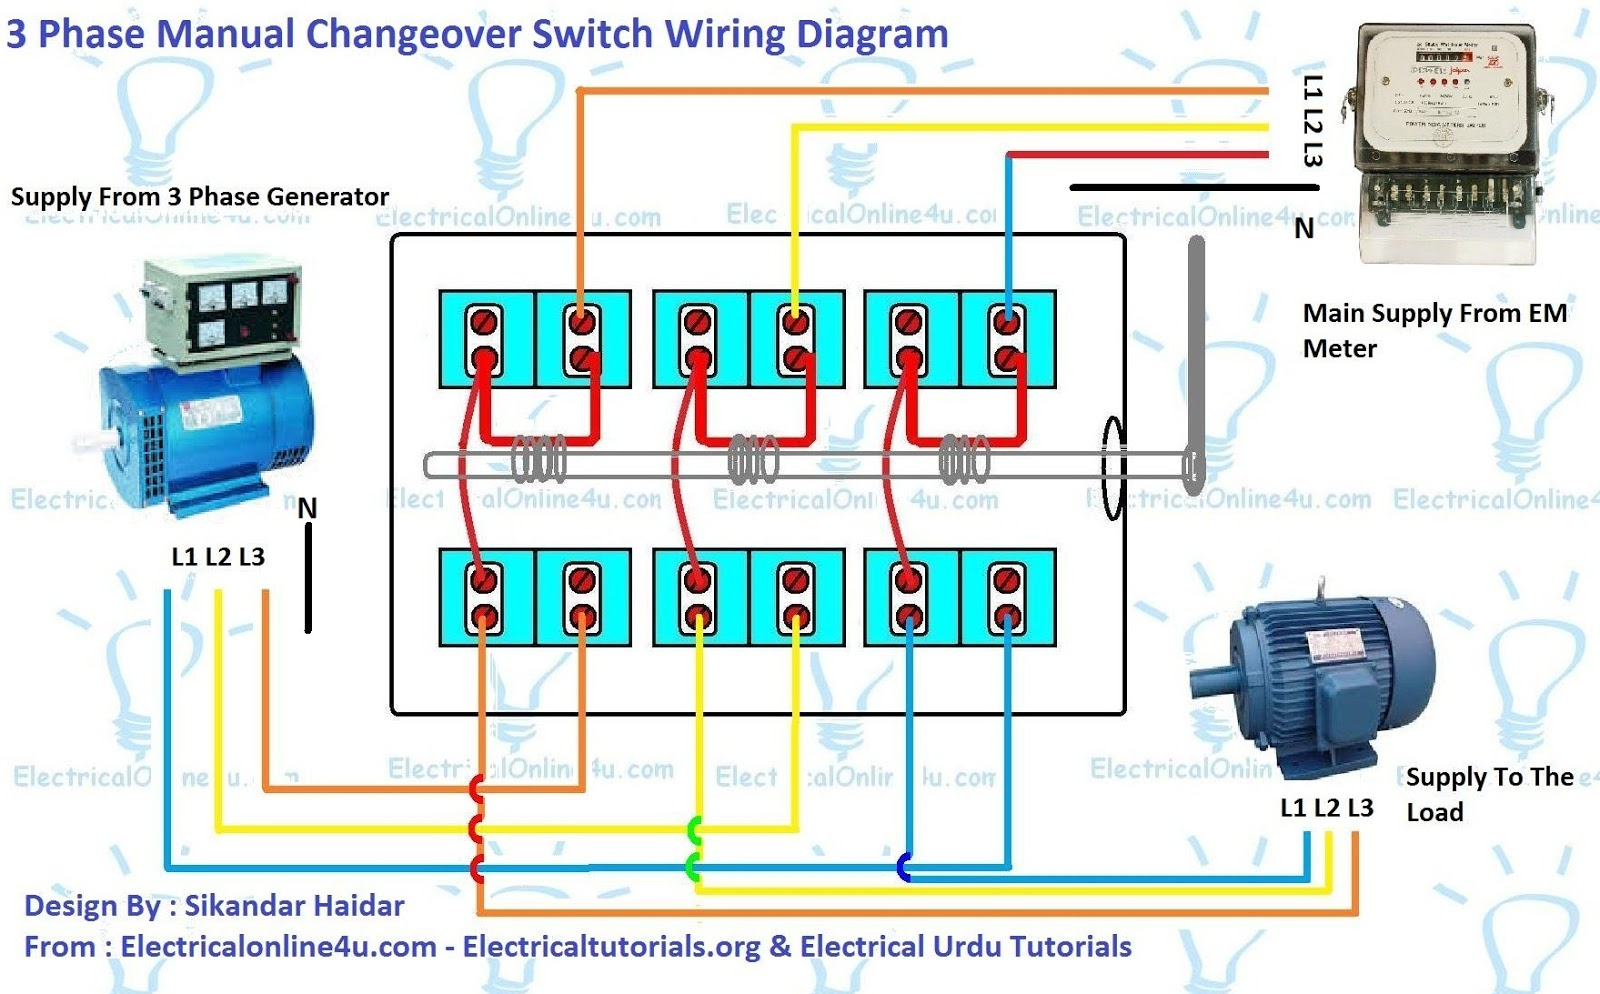 3%2Bphase%2Bmanual%2Bchangeover%2Bswitch%2Bwiring%2Bdiagram 3 phase manual changeover switch wiring diagram for generator 3 phase wire diagram at eliteediting.co